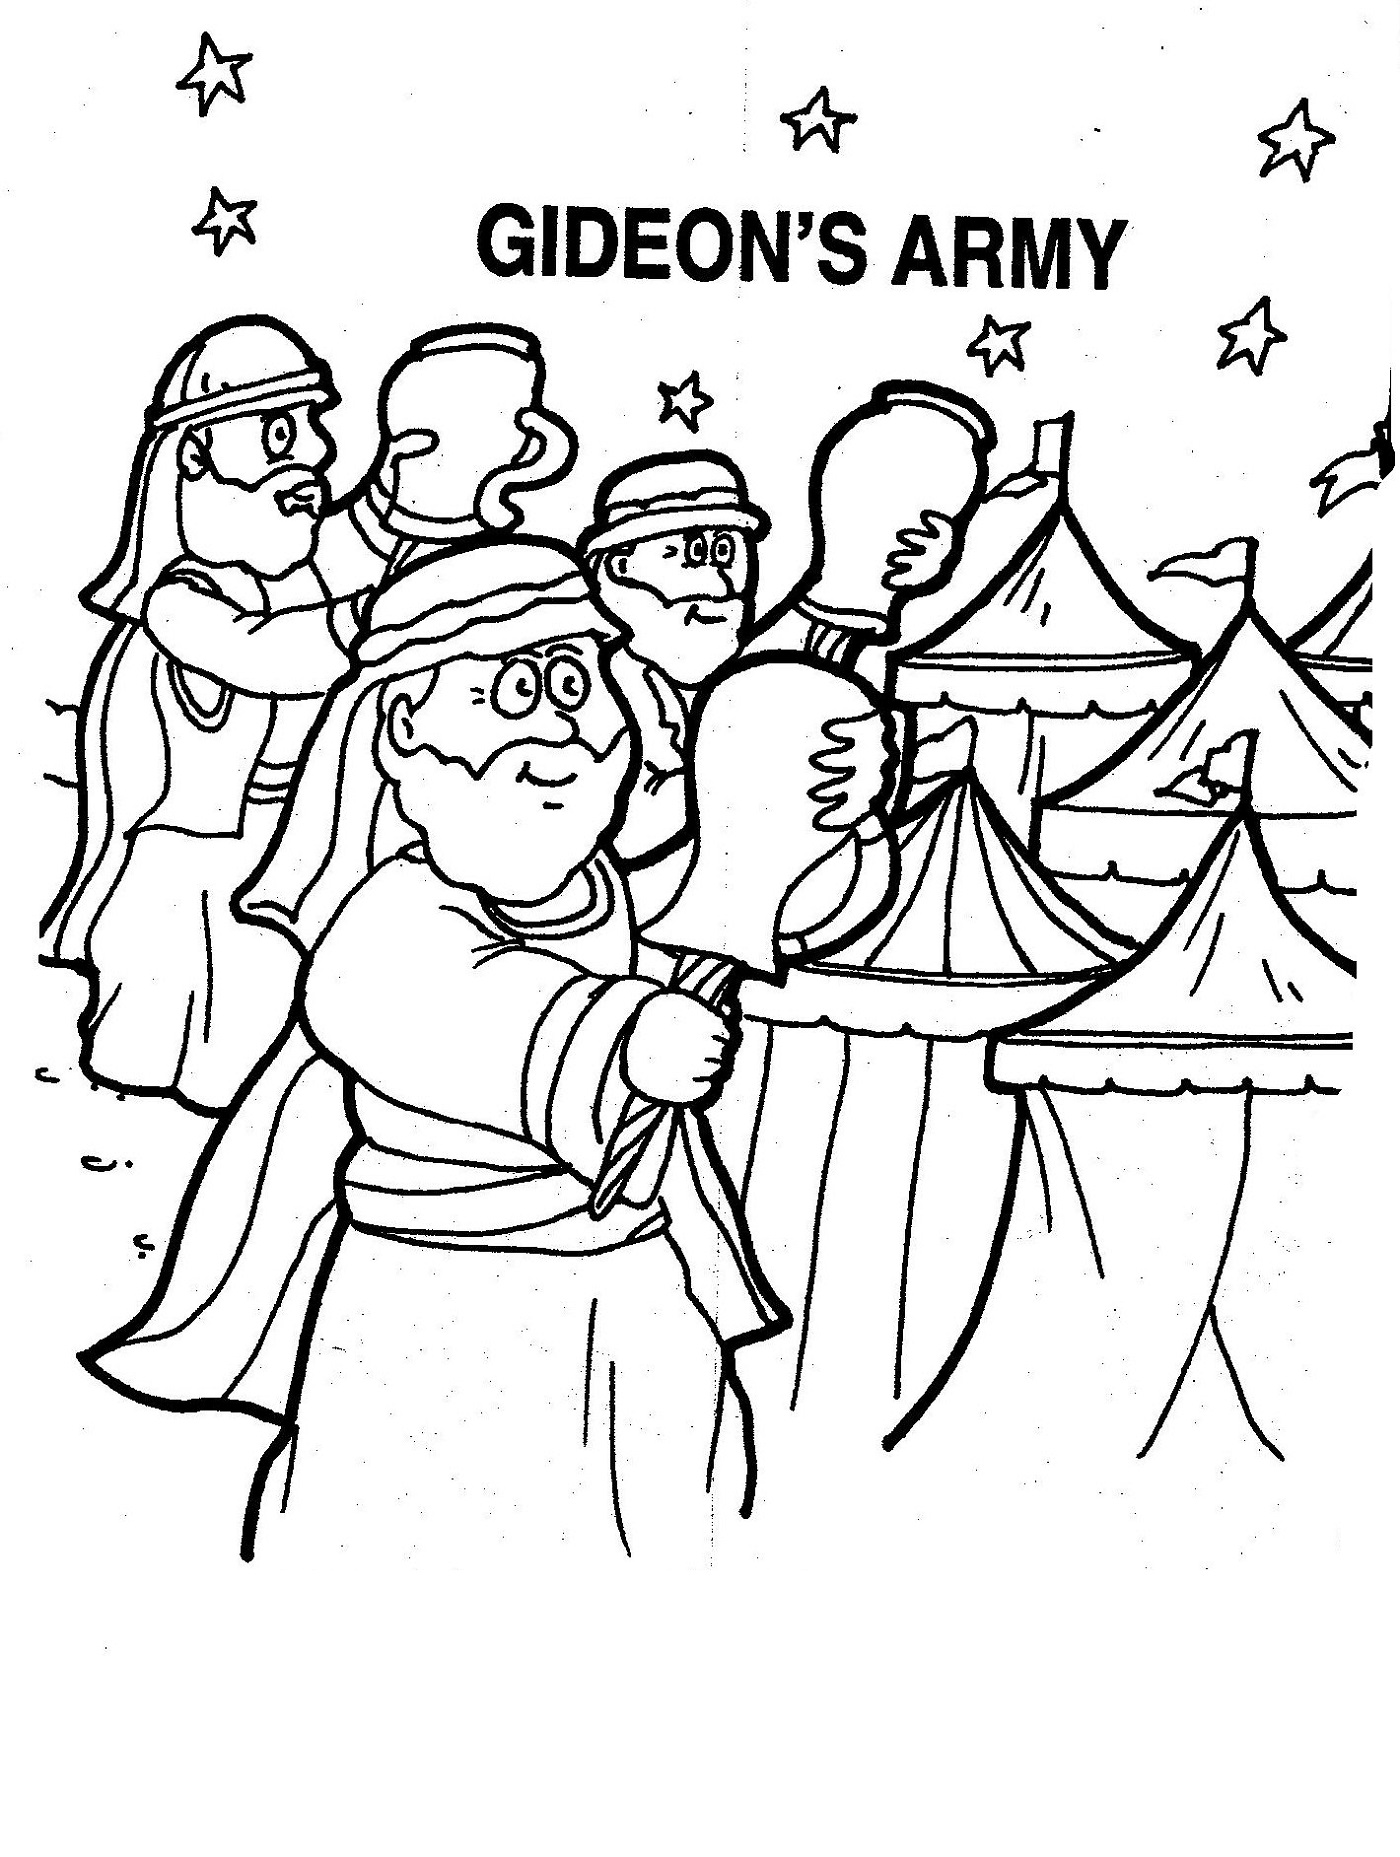 Gideon Coloring Pages For The Kids